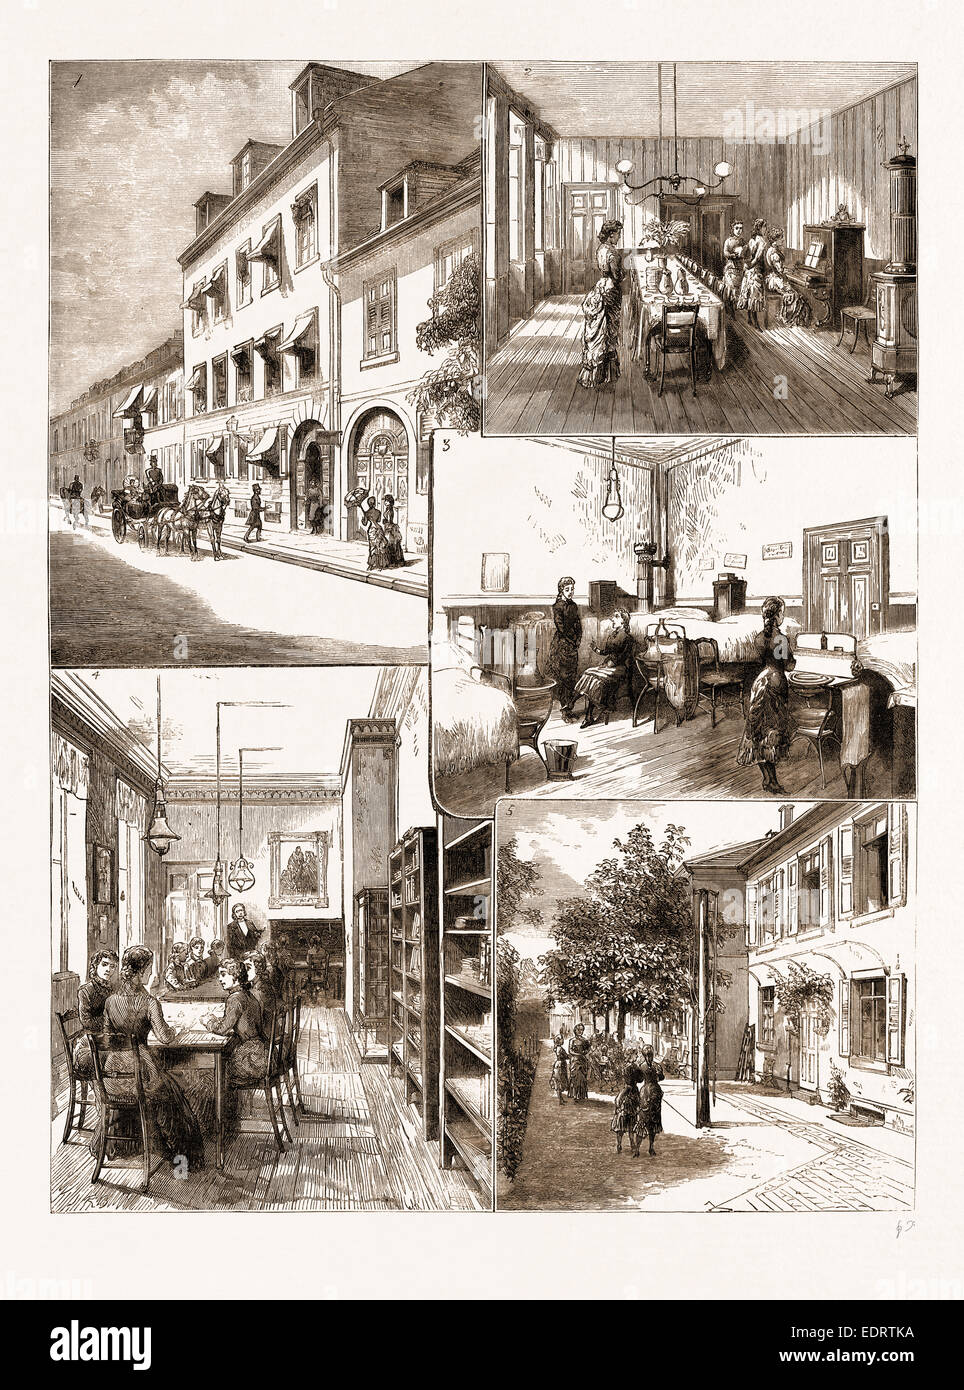 THE VICTORIA SCHOOL FOR GIRLS, CARLSRUHE, UNDER THE DIRECTION OF H.R.H. THE GRAND DUCHESS OF BADEN, GERMANY, 1883 - Stock Image